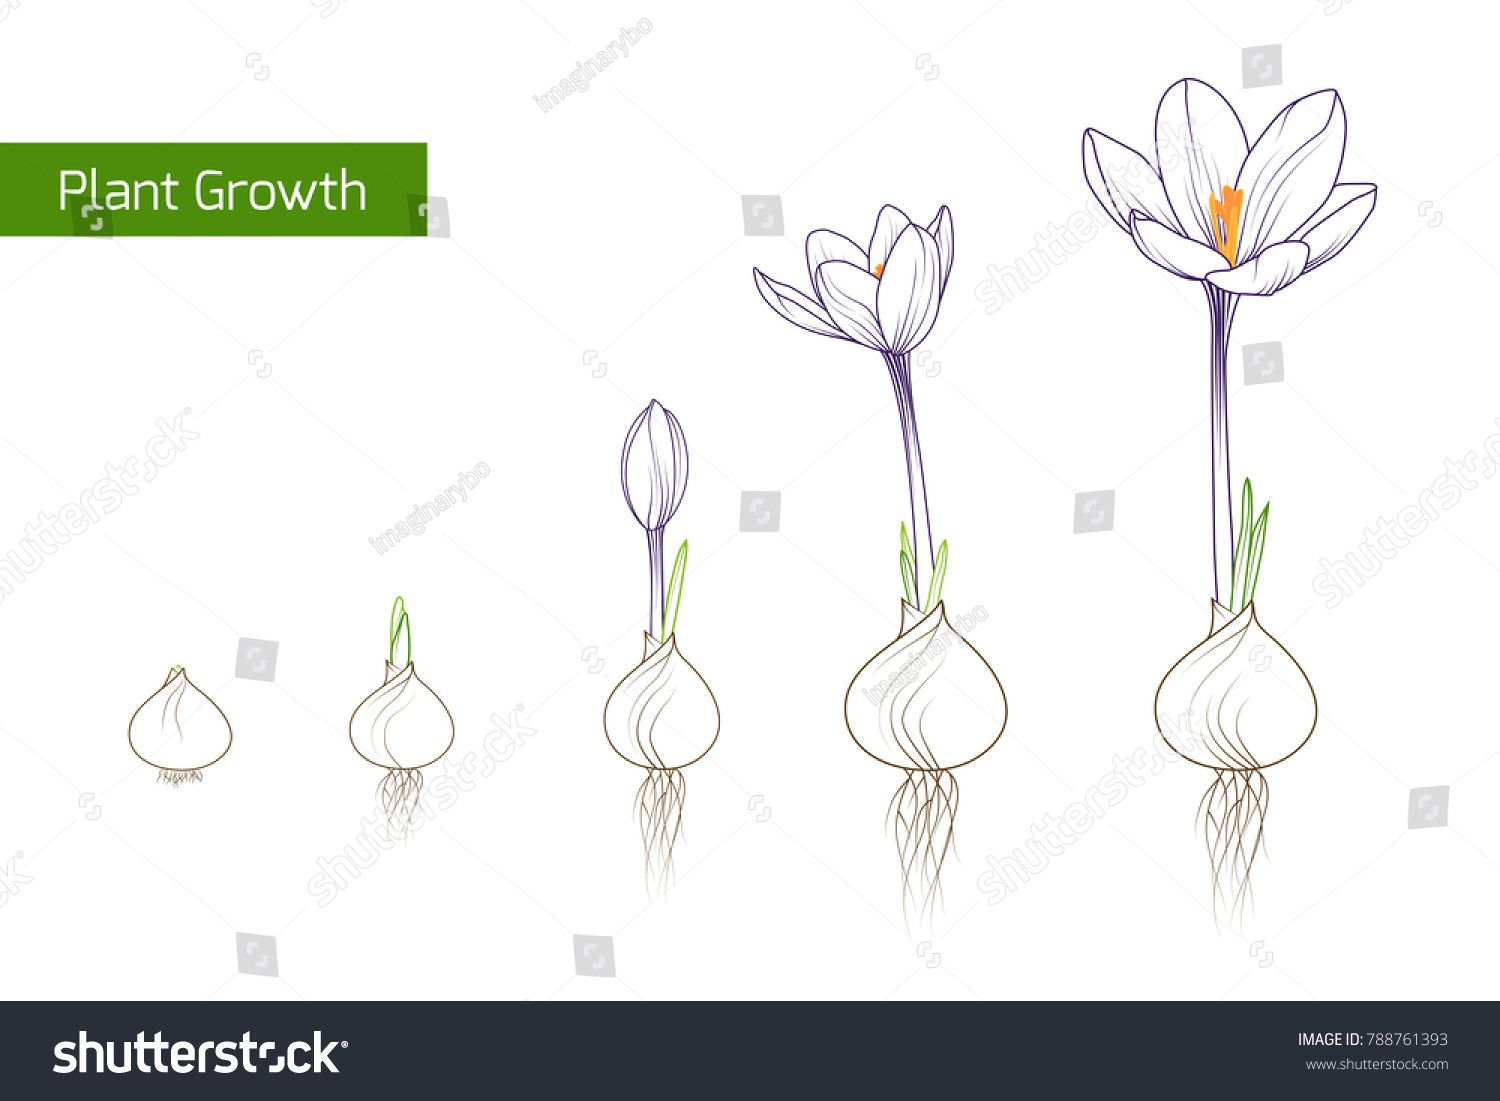 Flower plant growth concept vector design illustration crocus flower plant growth concept vector design illustration crocus germination from corm bulb to sprouts to flower life cycle phases evolution izmirmasajfo